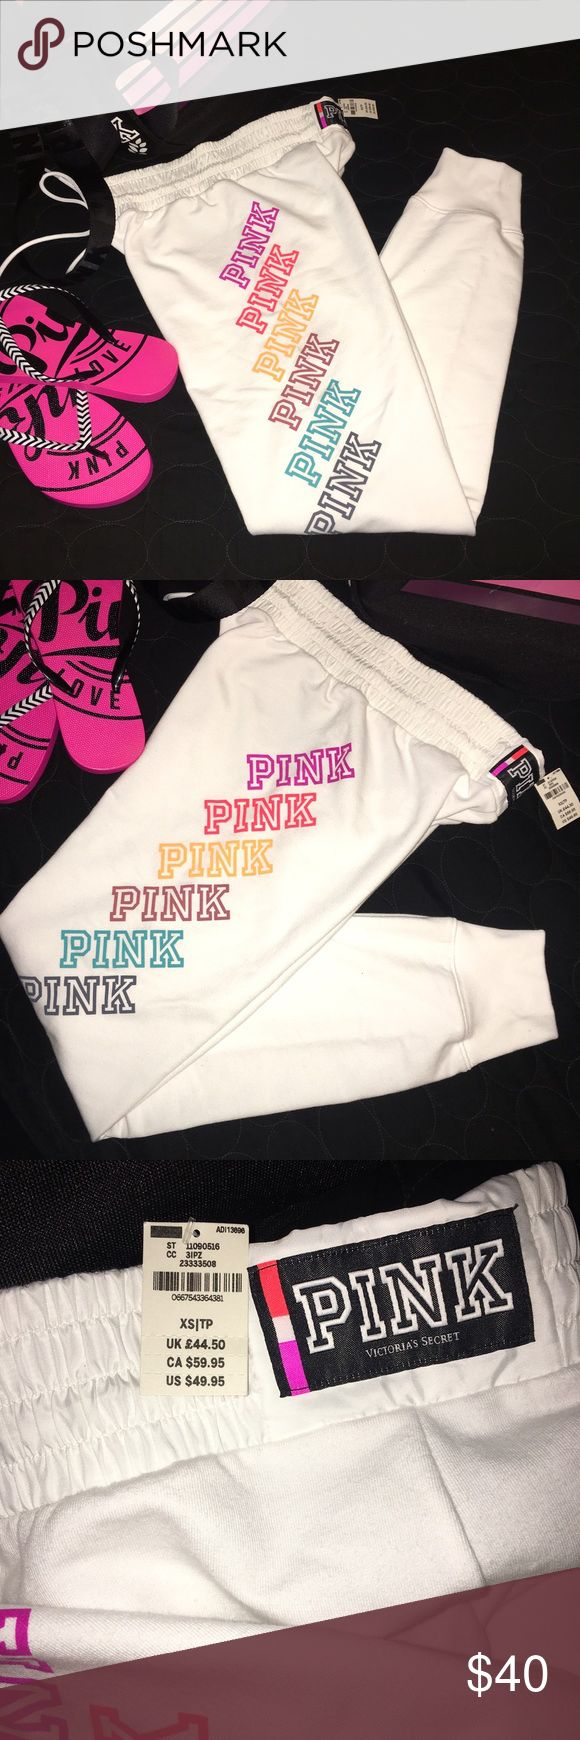 PINK Lounge/Gym Pant XS Get summer ready with these super cute PINK Victoria's Secret white joggers with multicolored PINK logo. Goes with a variety of tops, sports bras & swim. Brand New. Last pic is from another seller modeling her gym pant. PINK Victoria's Secret Pants Track Pants & Joggers